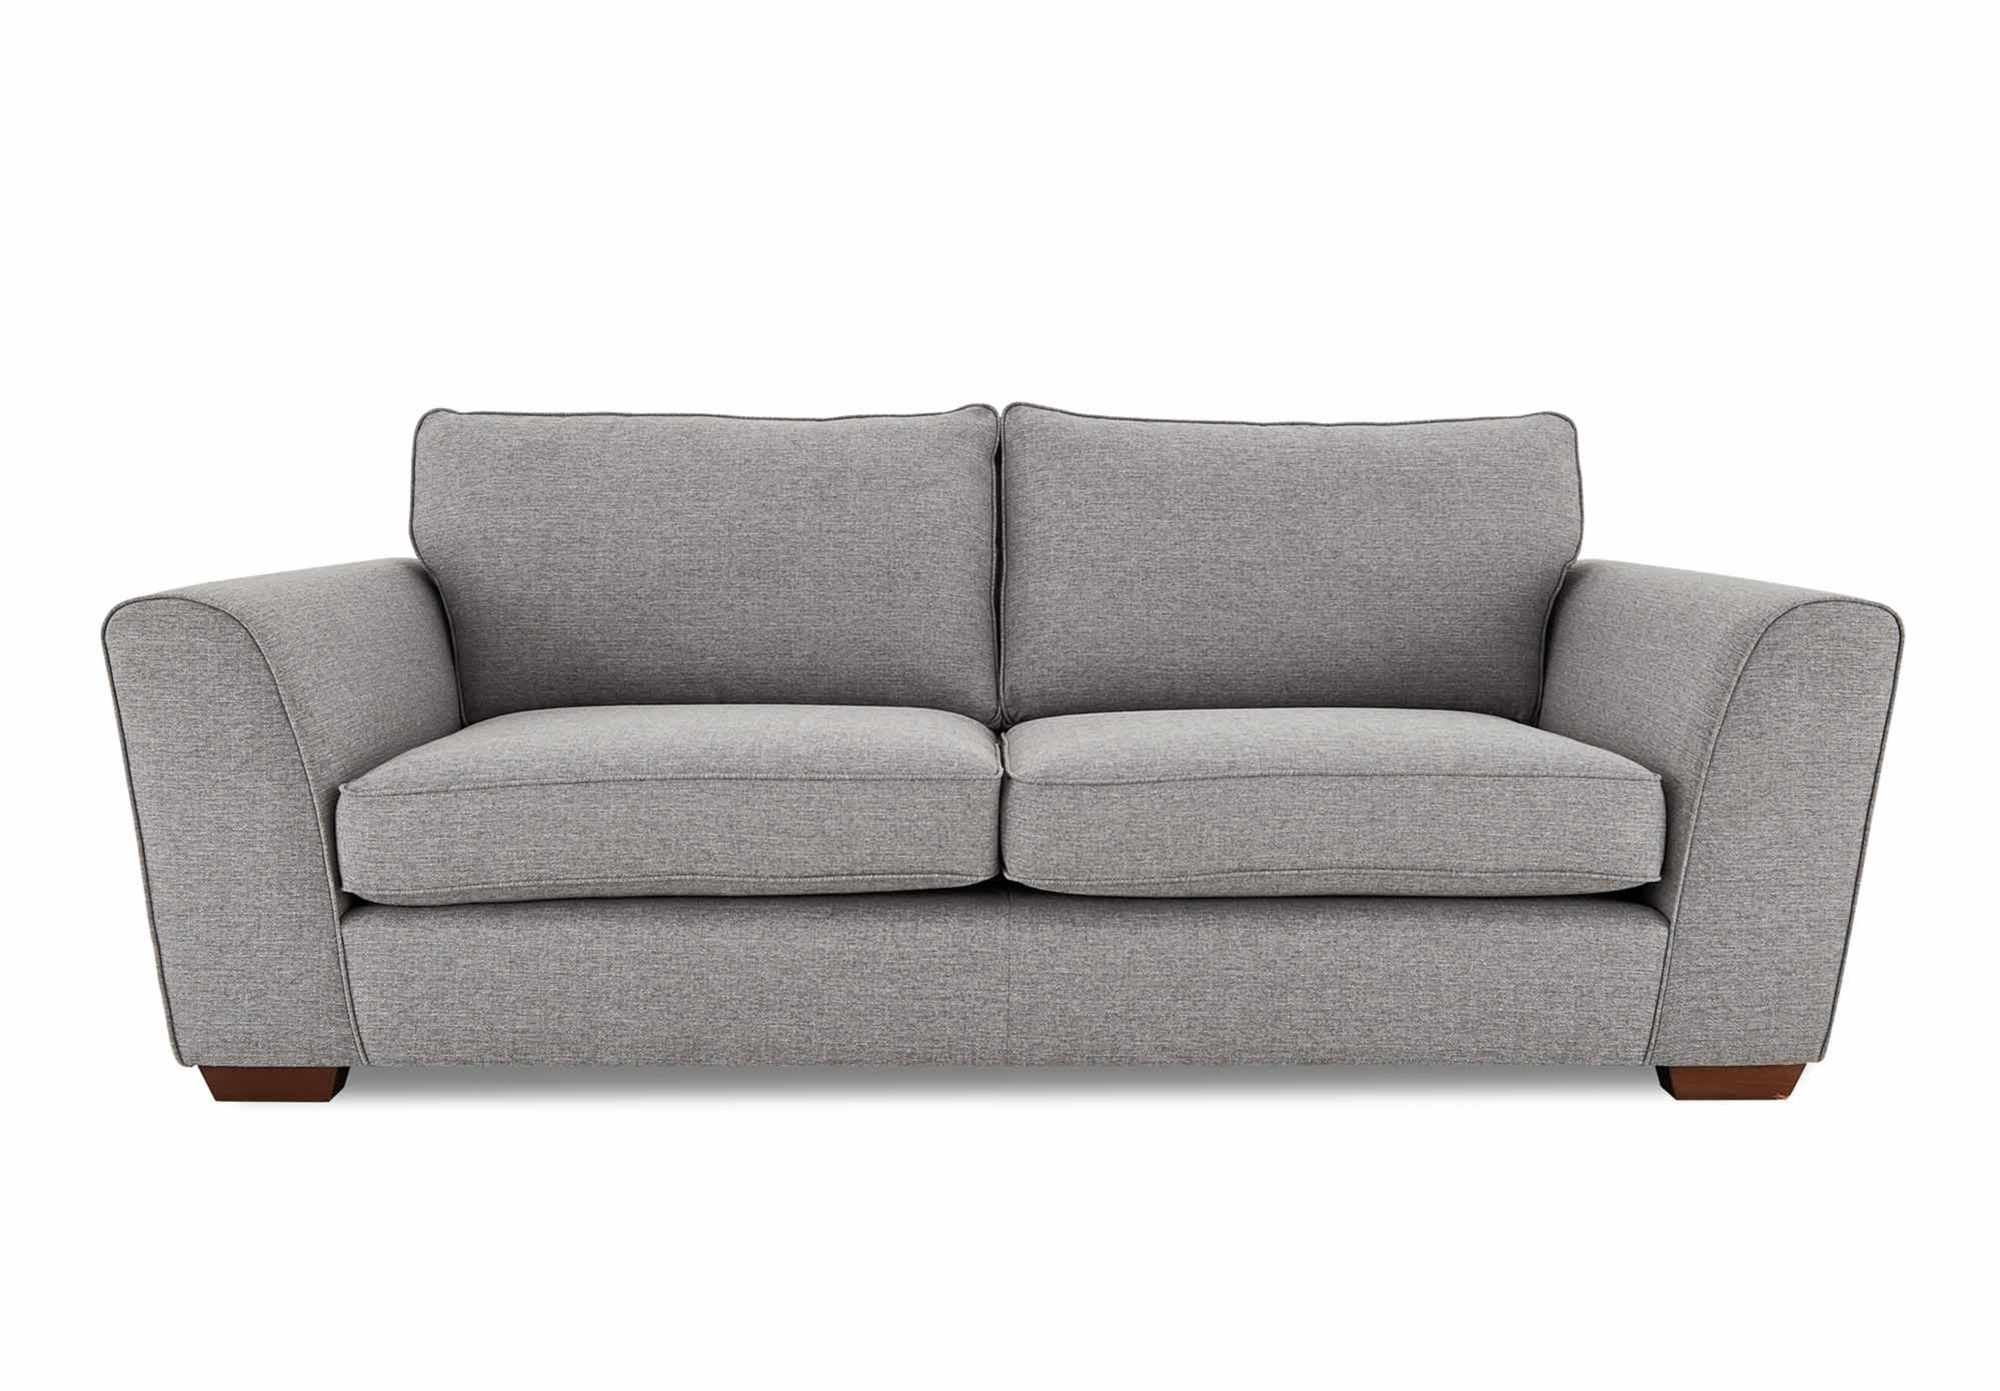 Furniture Village Sofa Bed Dante Argos 2 Seater Extra Large High Street Collection Oxford St